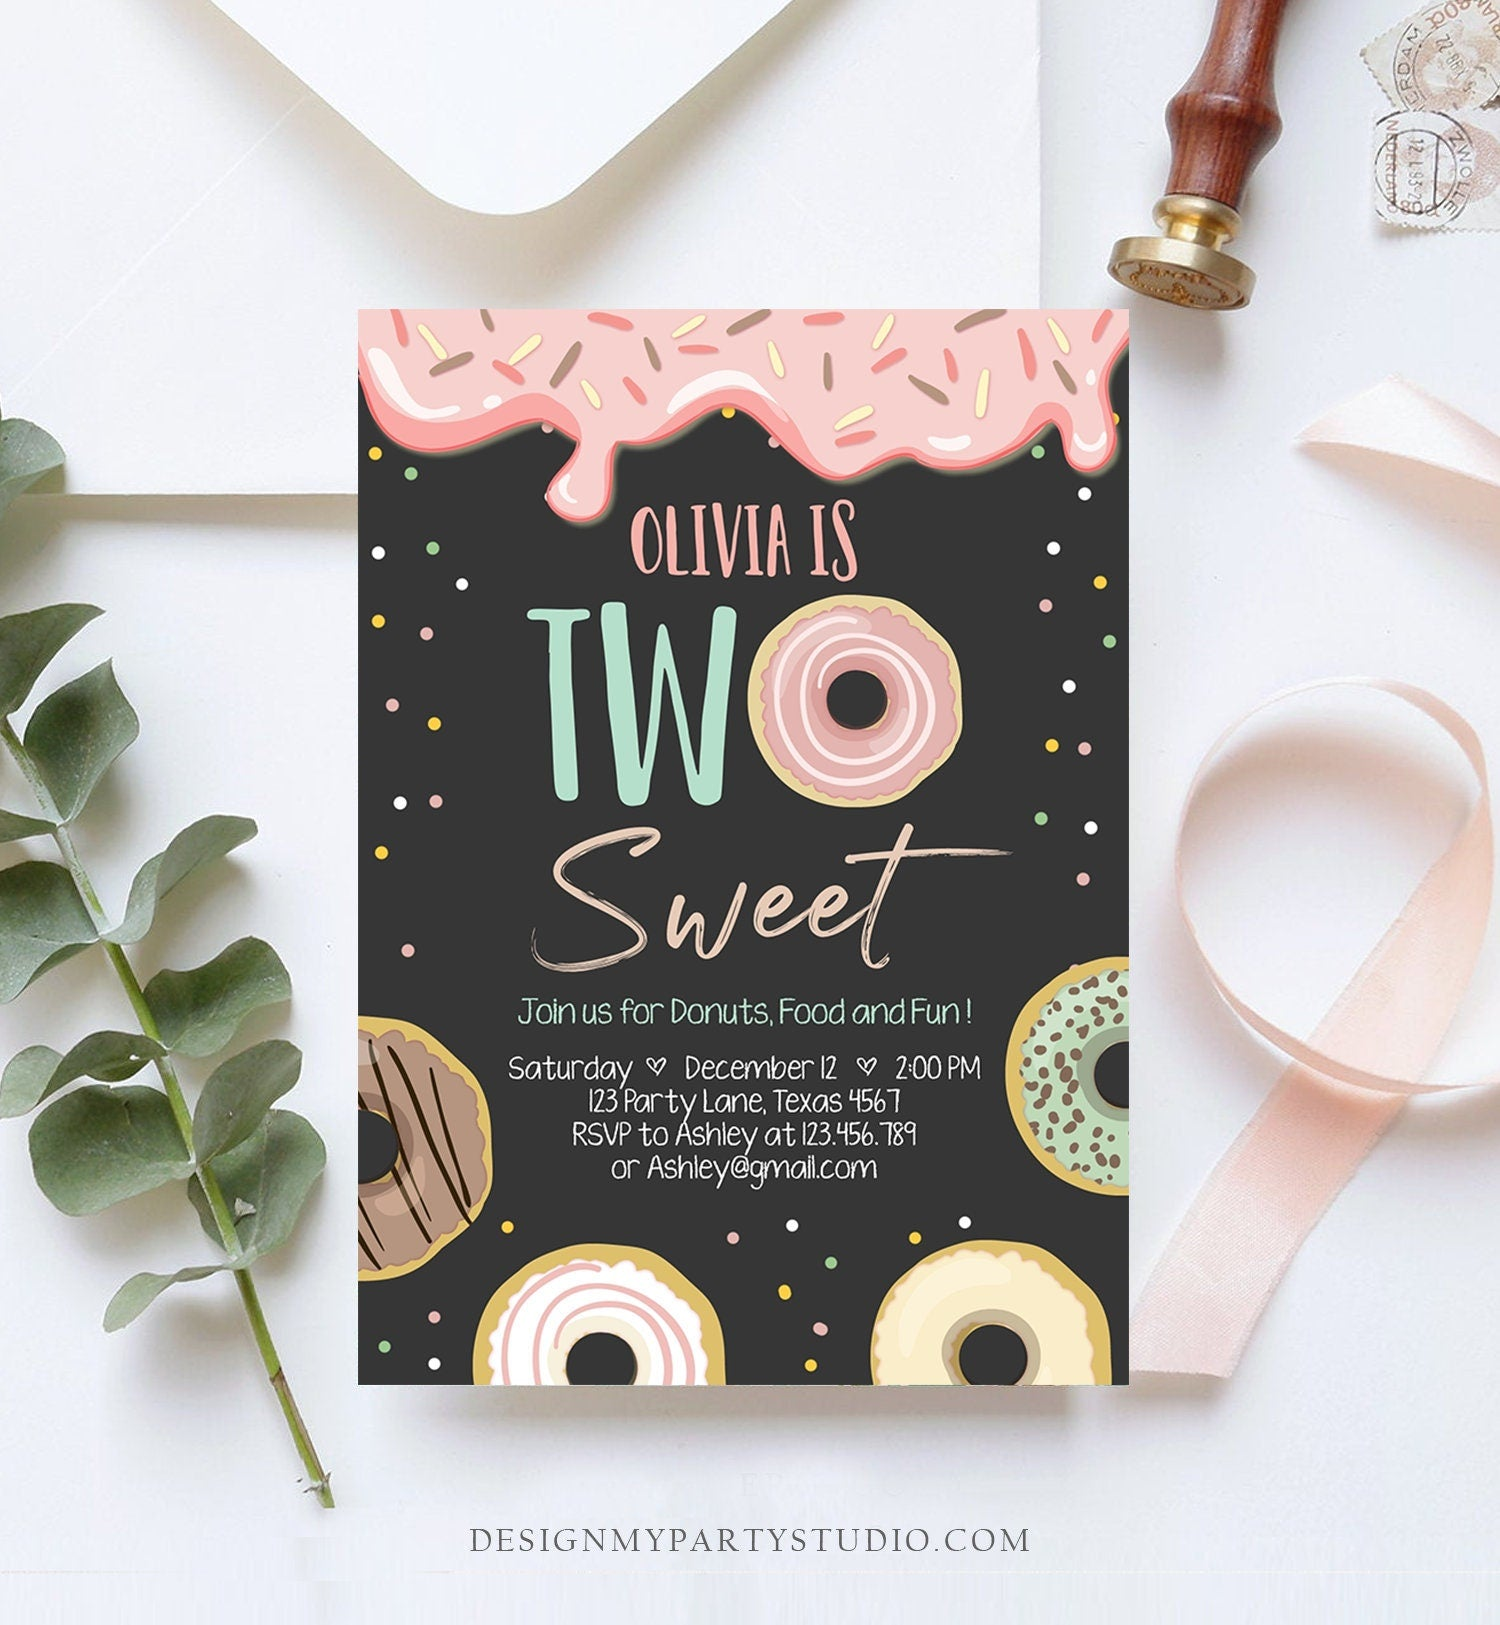 Editable Donut Two Sweet Birthday Invitation Second Birthday Party Pink Girl Doughnut 2nd Digital Download Printable Template Corjl 0320